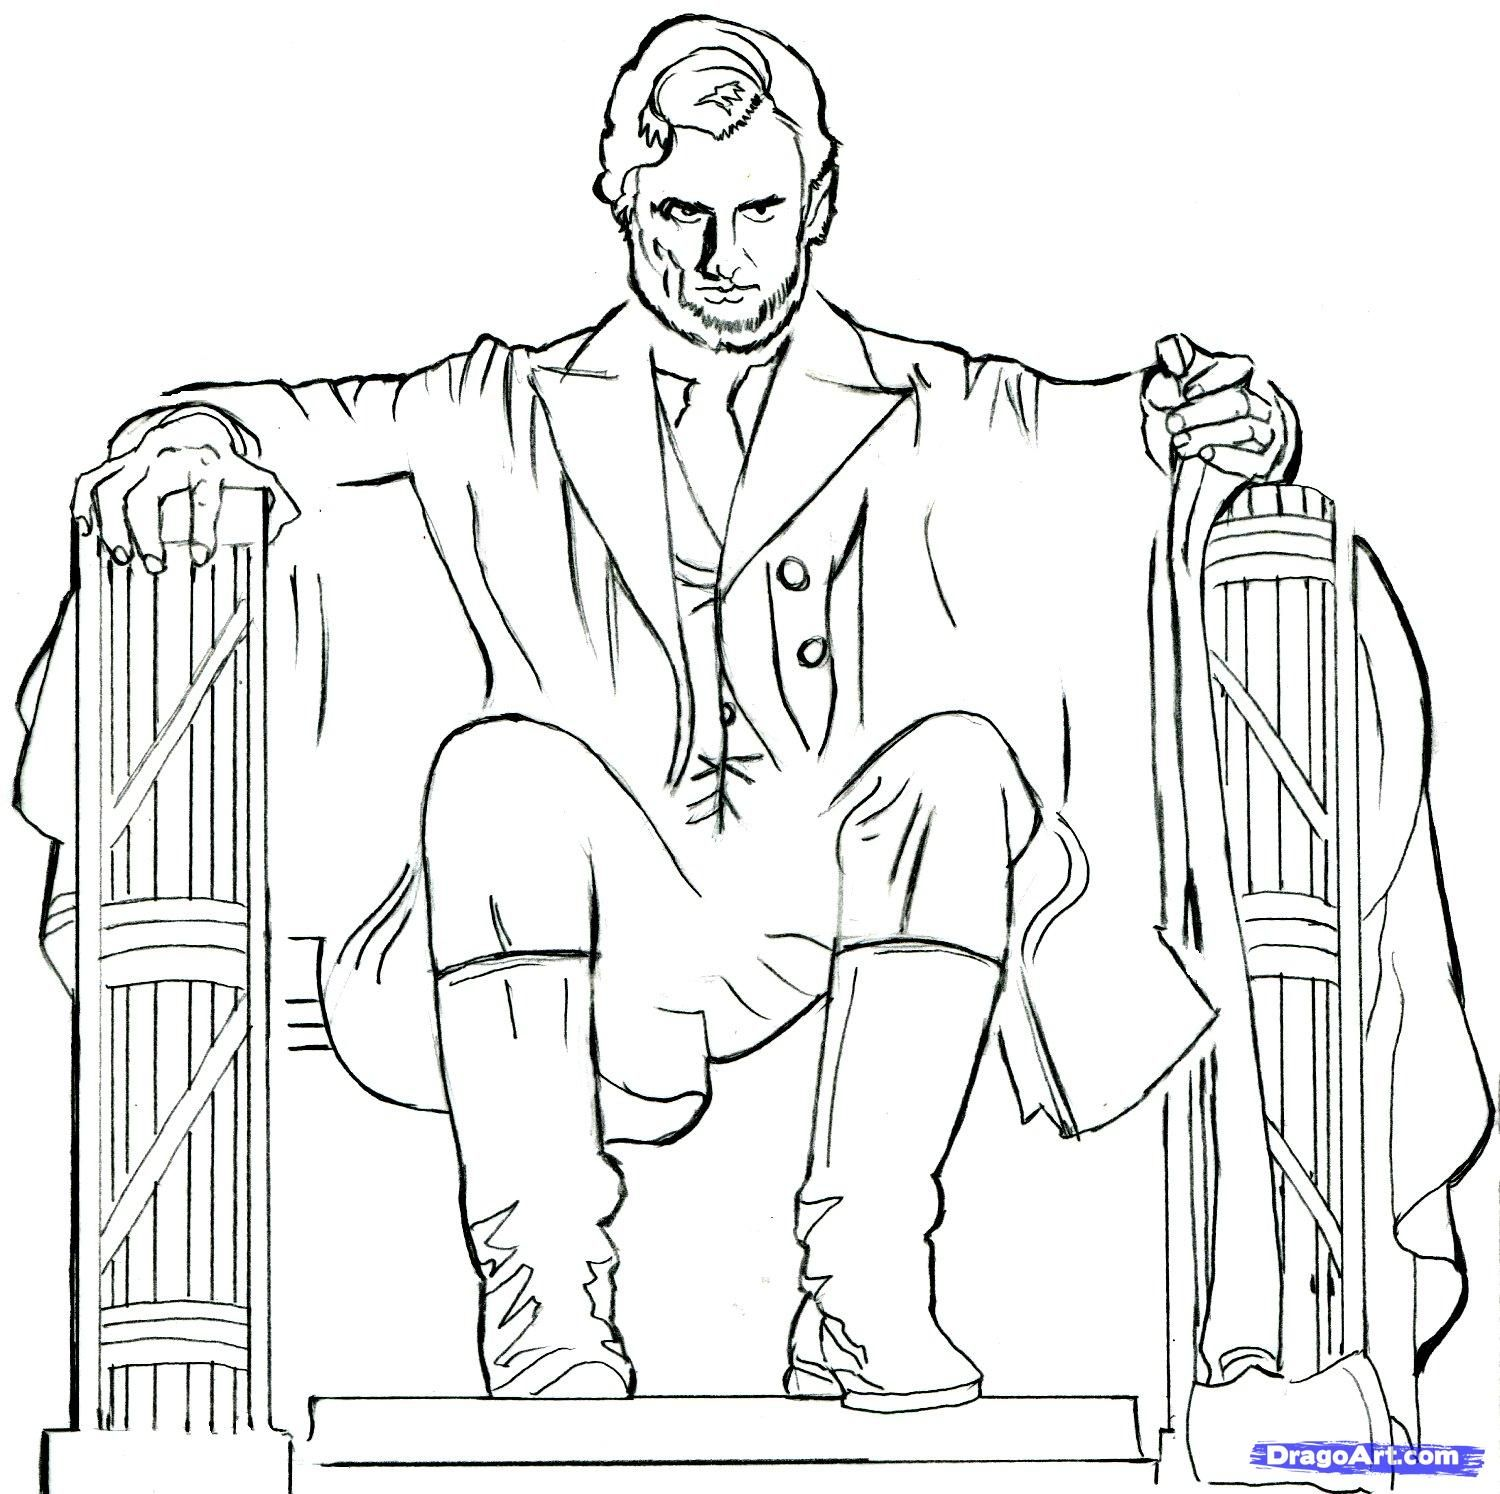 How to draw Abraham Lincoln: Vampires hunter pencil step by step